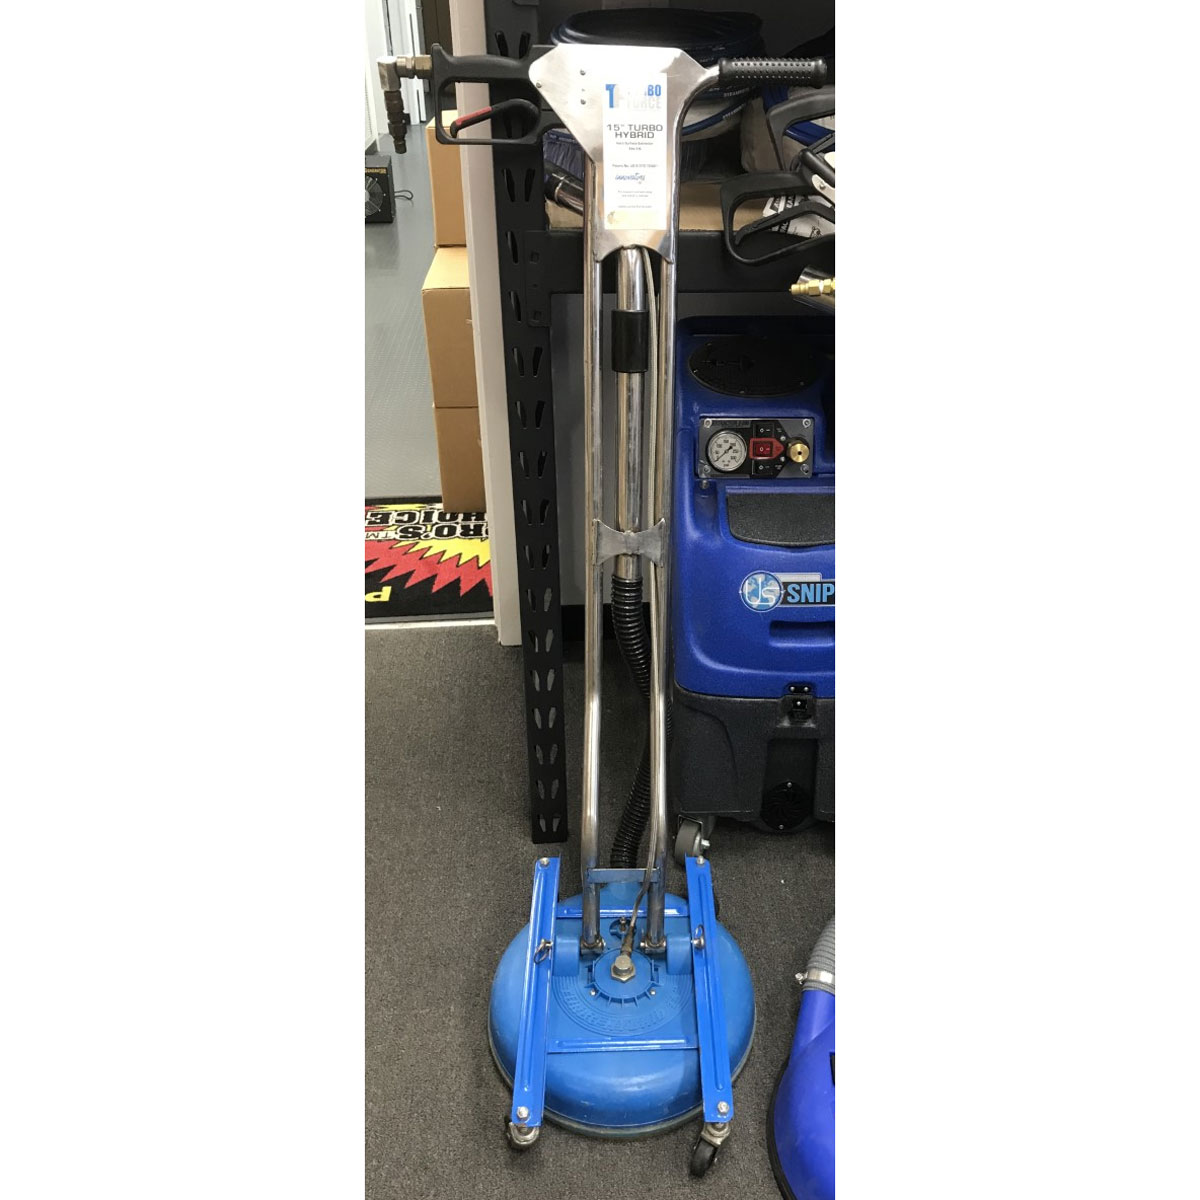 Used Turboforce TH15 Demo Tile and Concrete Cleaning Wand 15 inches TH-15 With Wheels Bundle B+ Rated